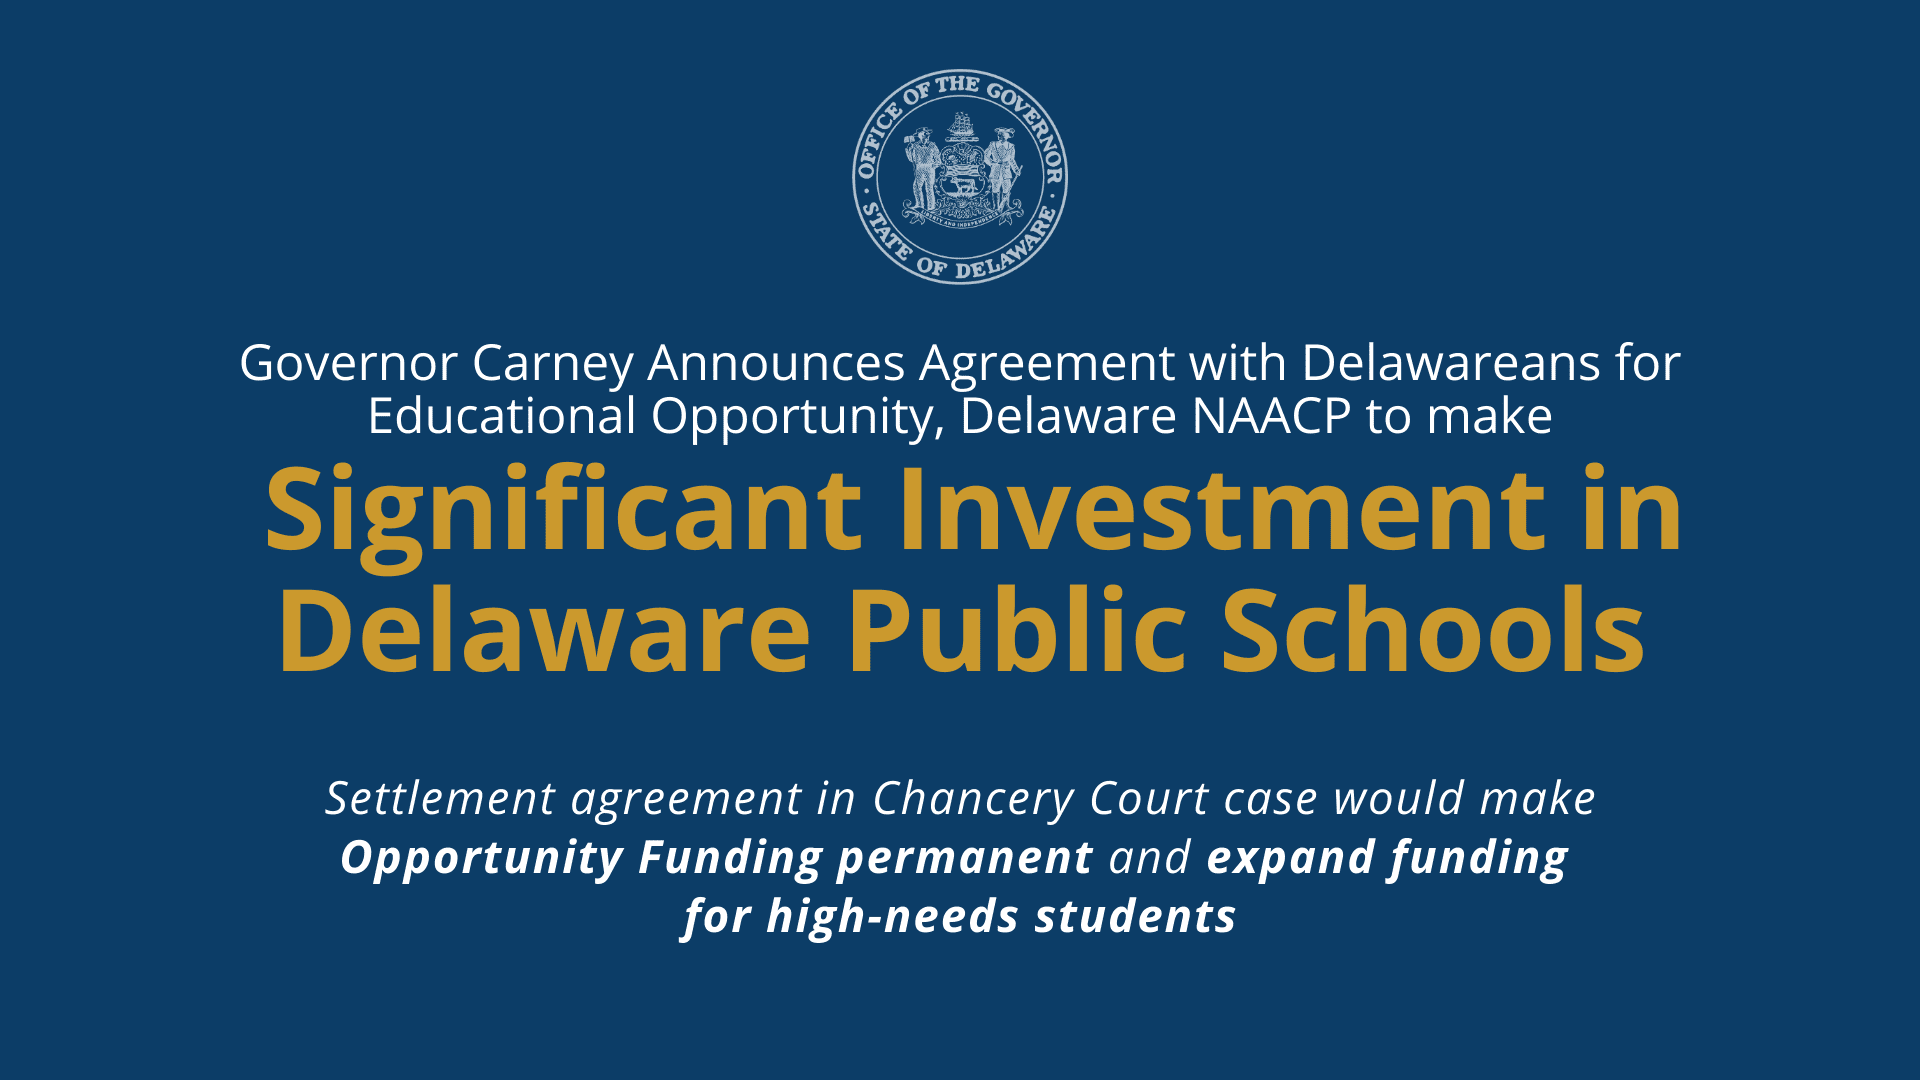 Gov Carney Delawareans For Educational Opportunity De Naacp Agreement Makes Significant Inve In 2020 School Direct Education School Testing